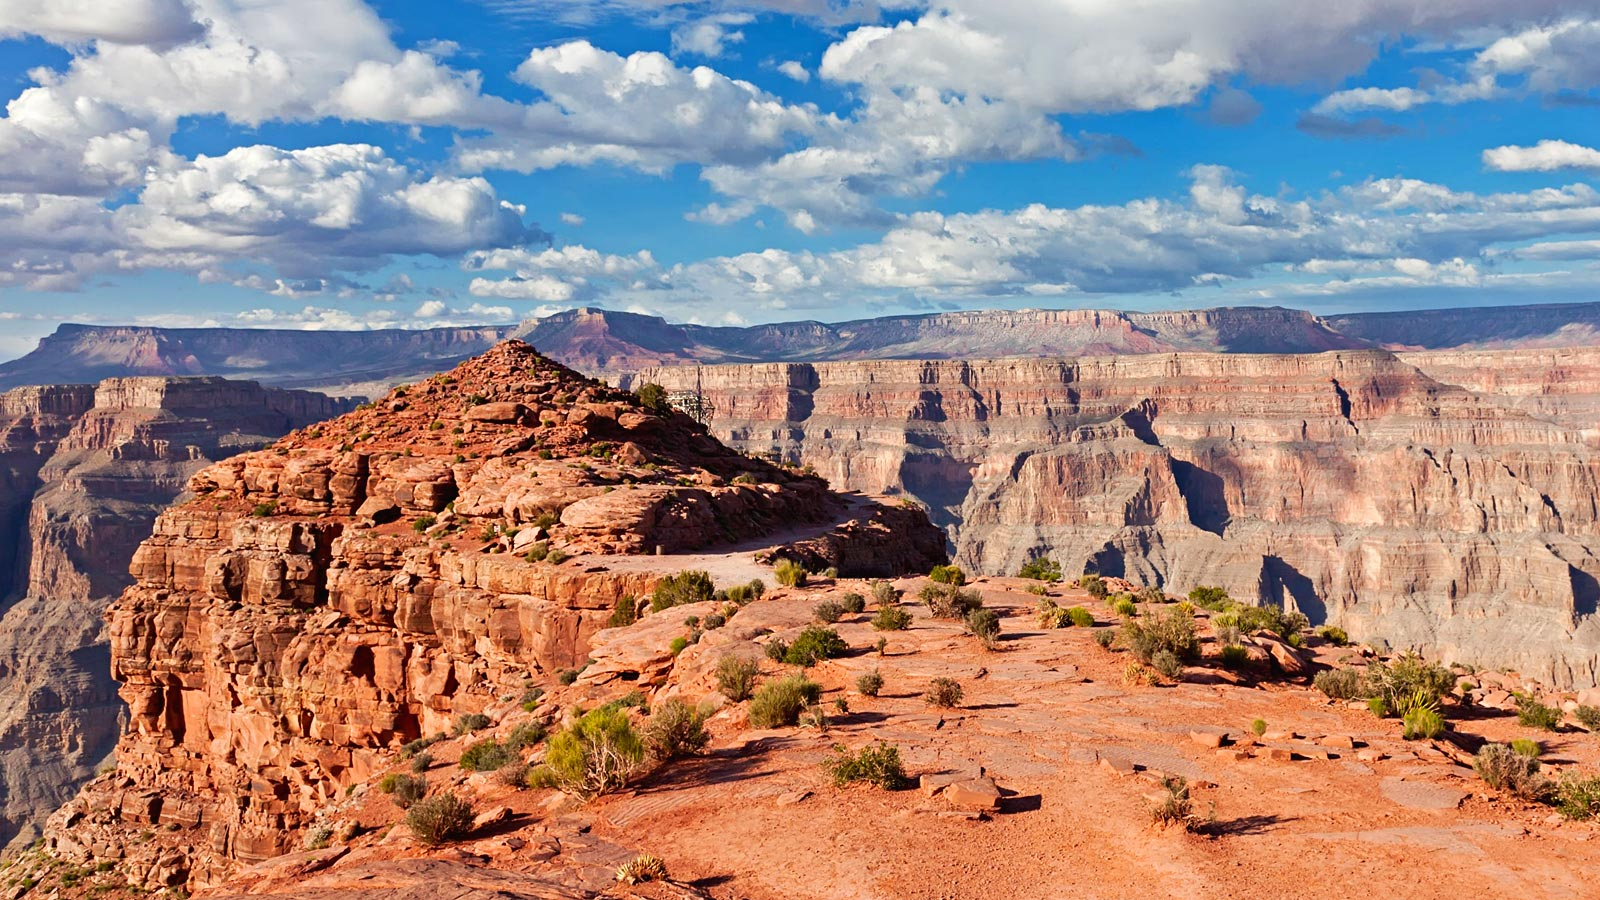 Grand Canyon West Rim Indian Adventure Landing Tour by Helicopter – $499